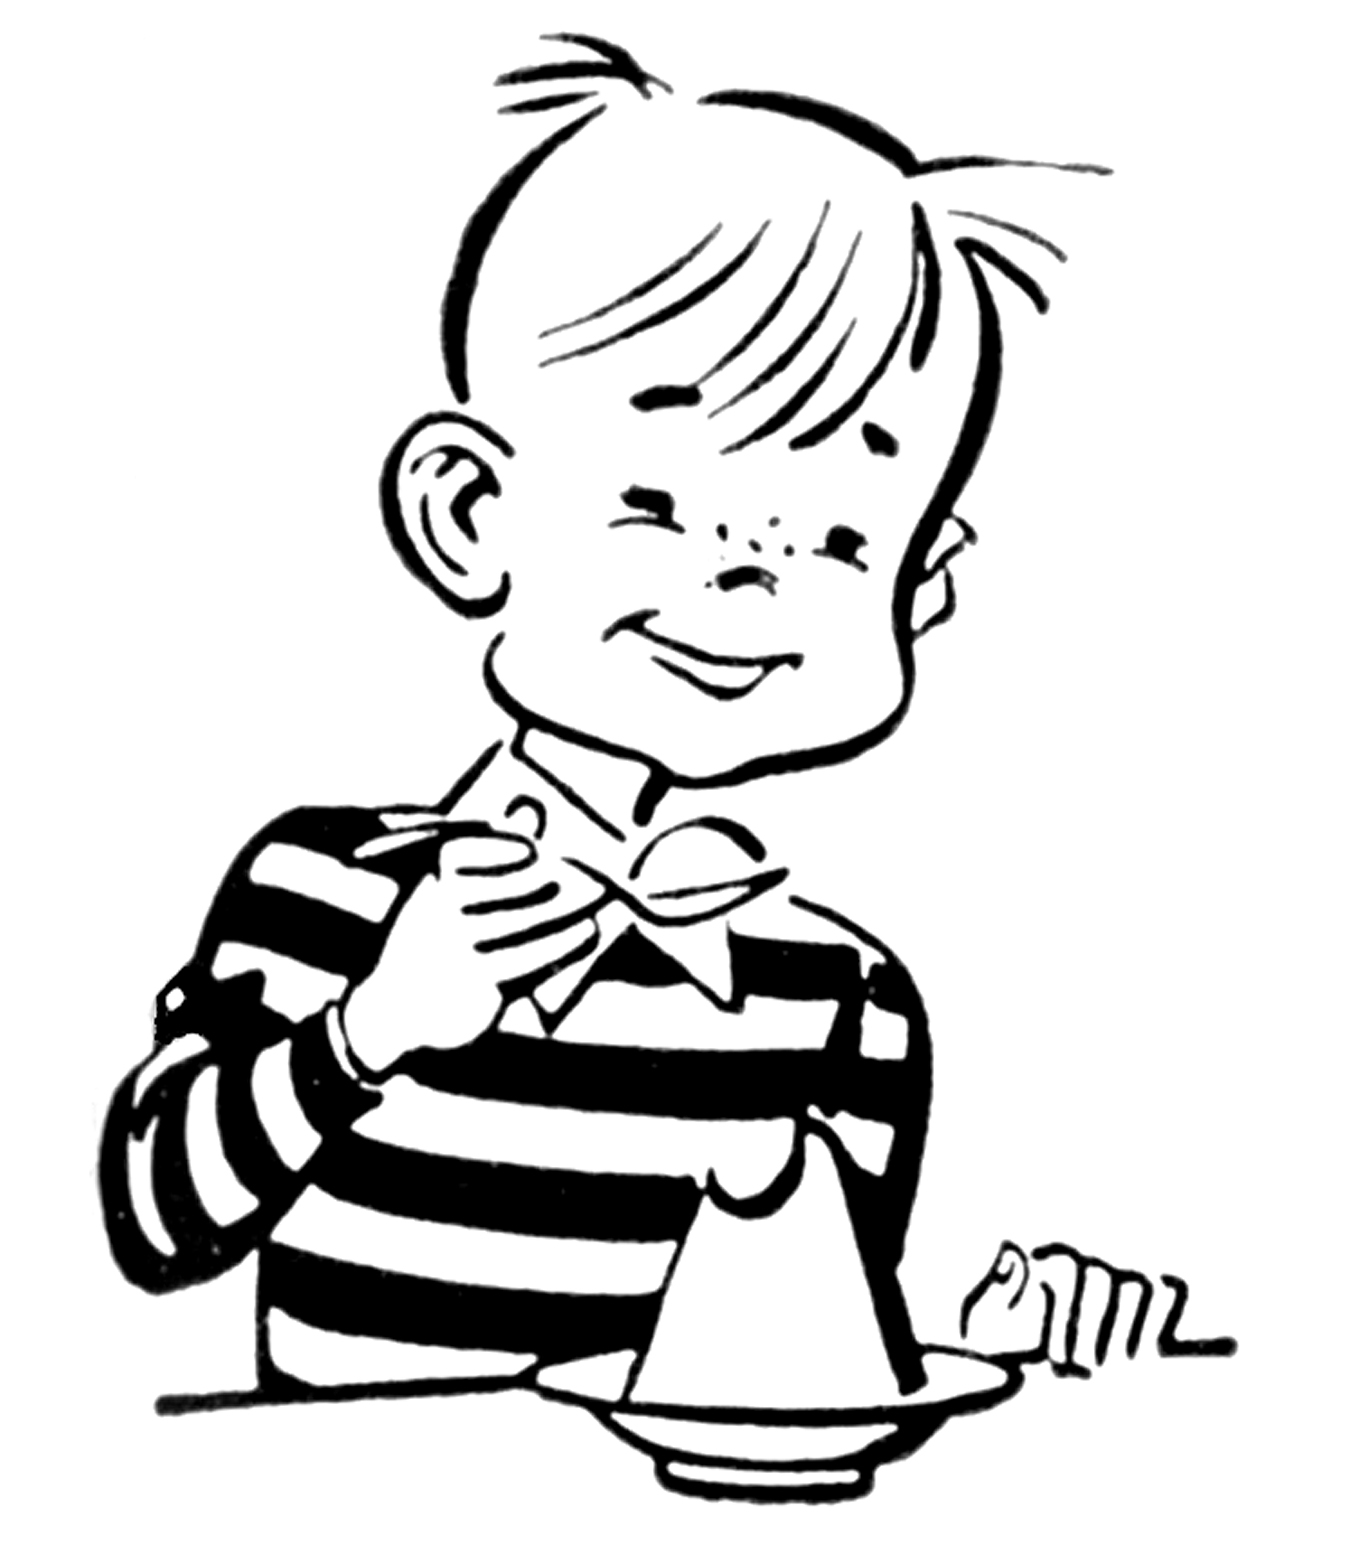 Clipart Retro Boy Black White.